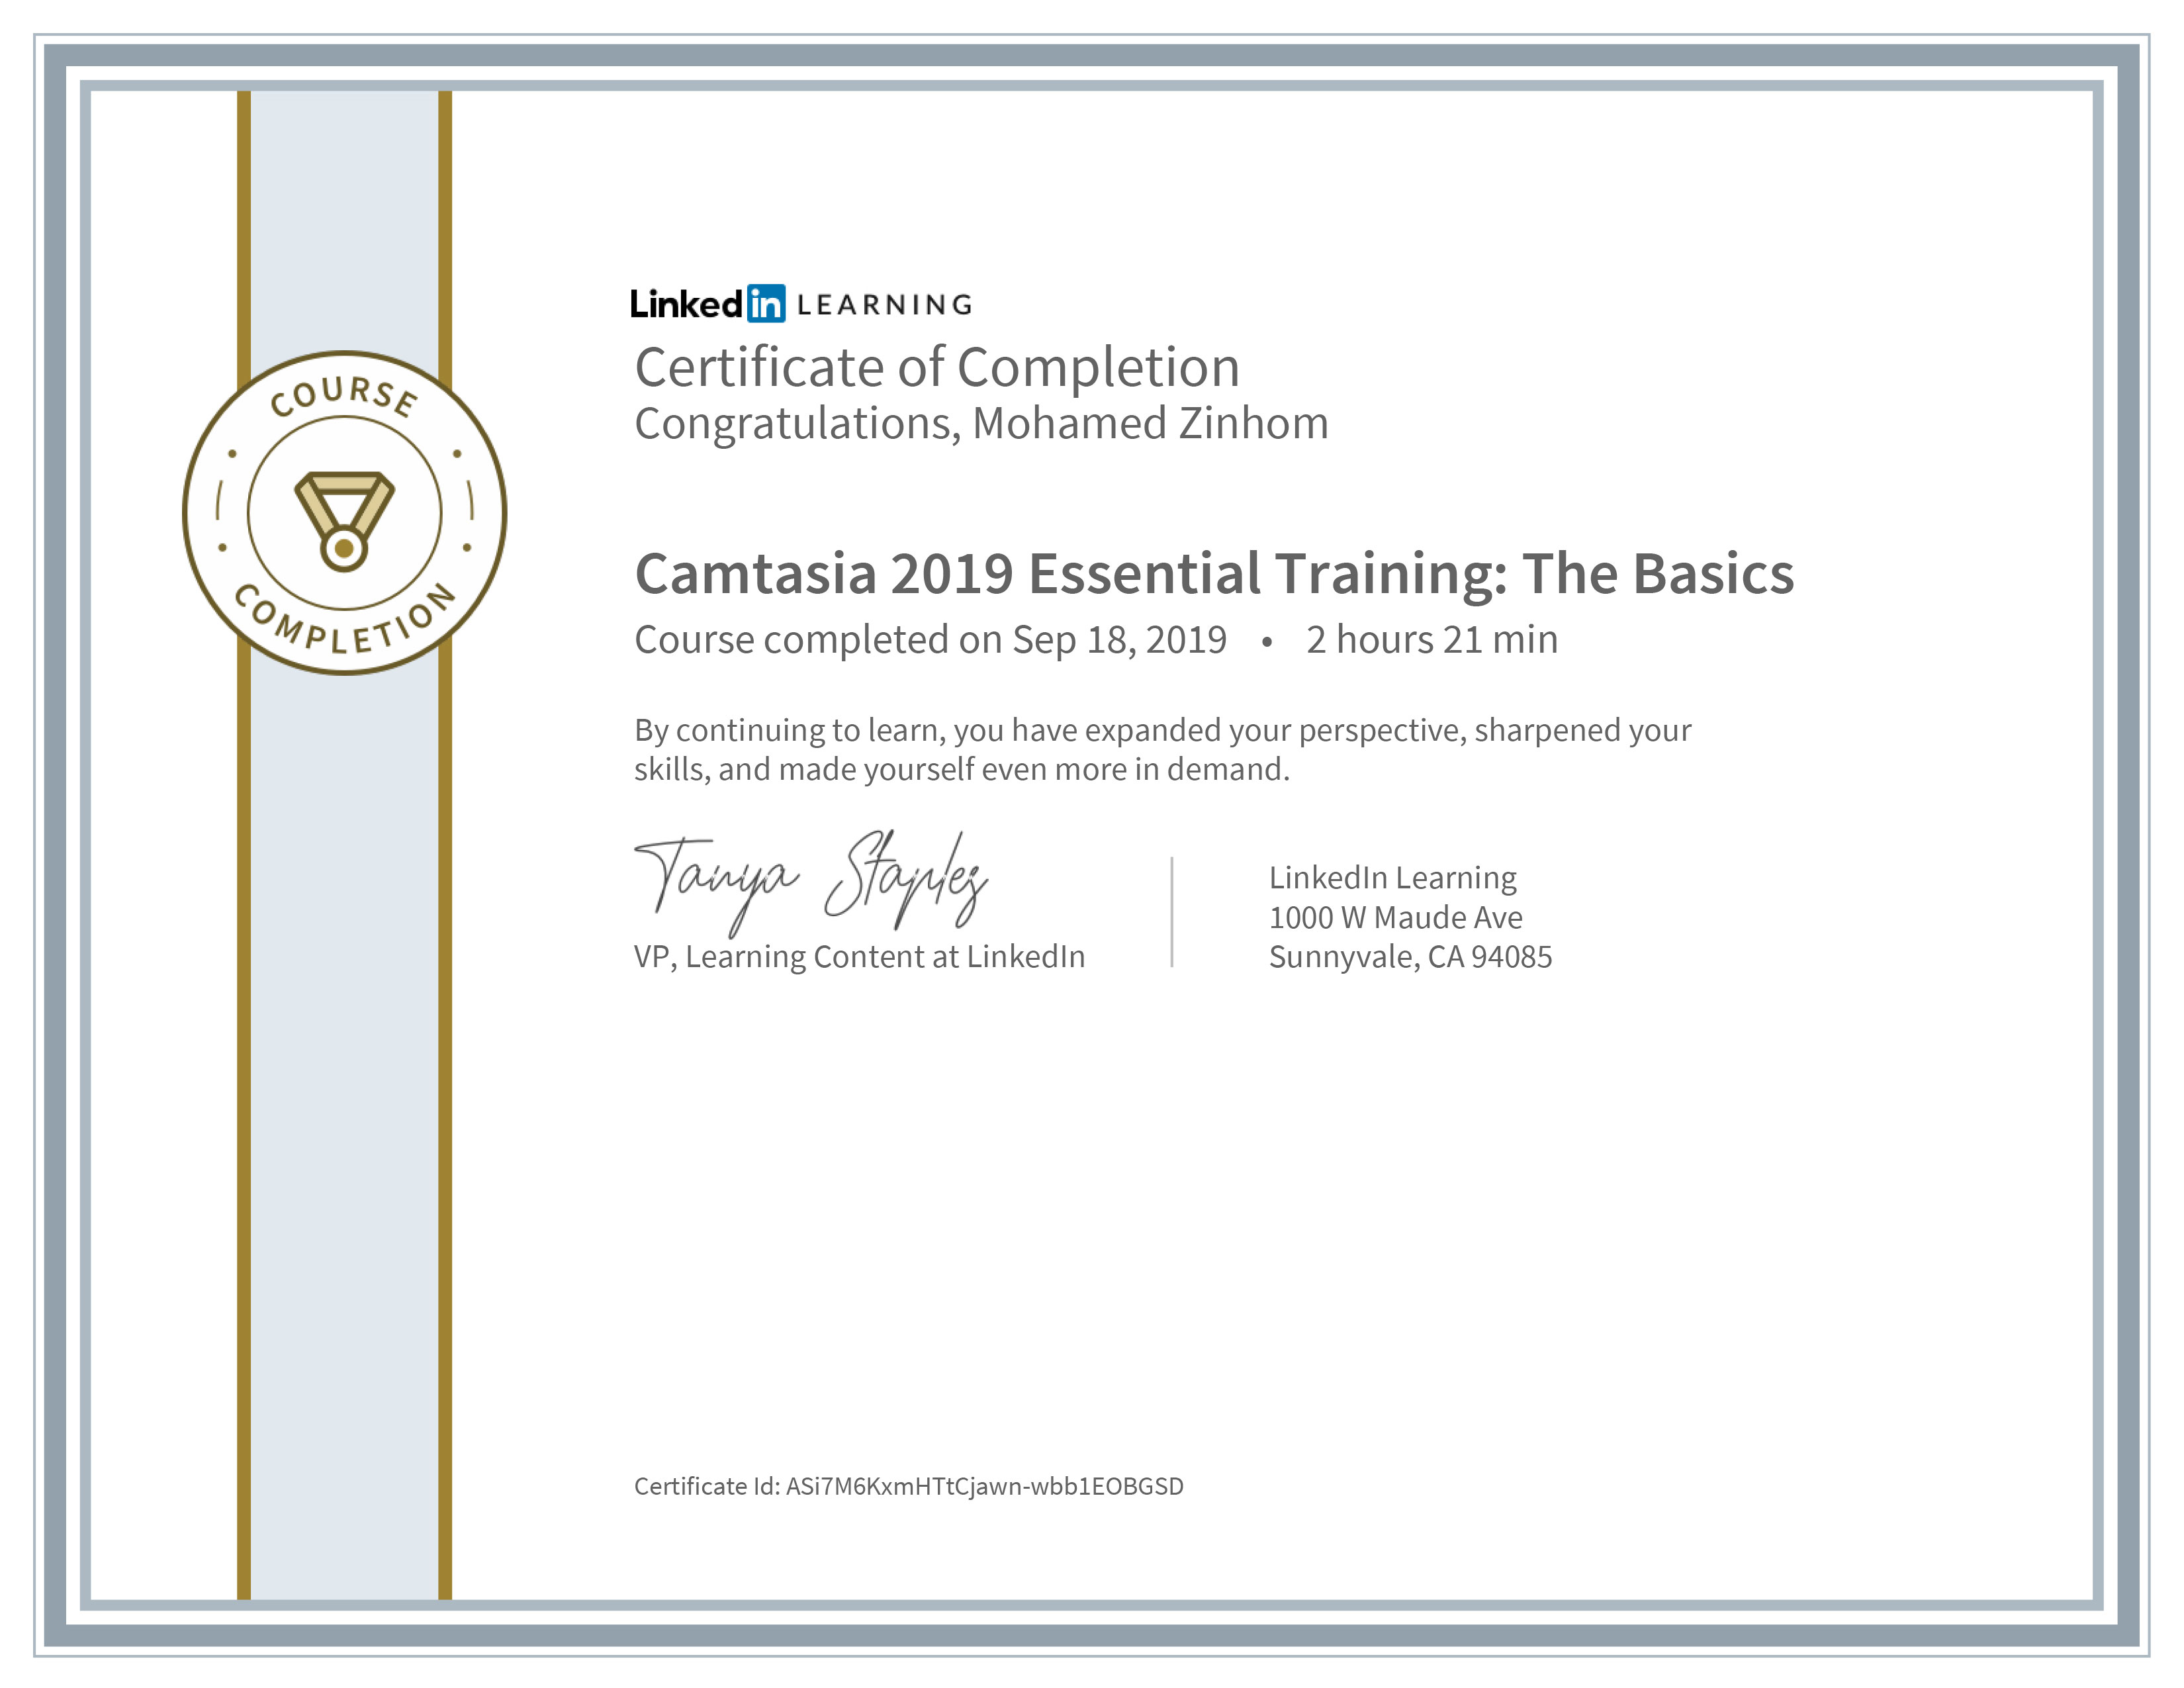 Certificate Of Completion Camtasia 2019 Essential Training The Basics